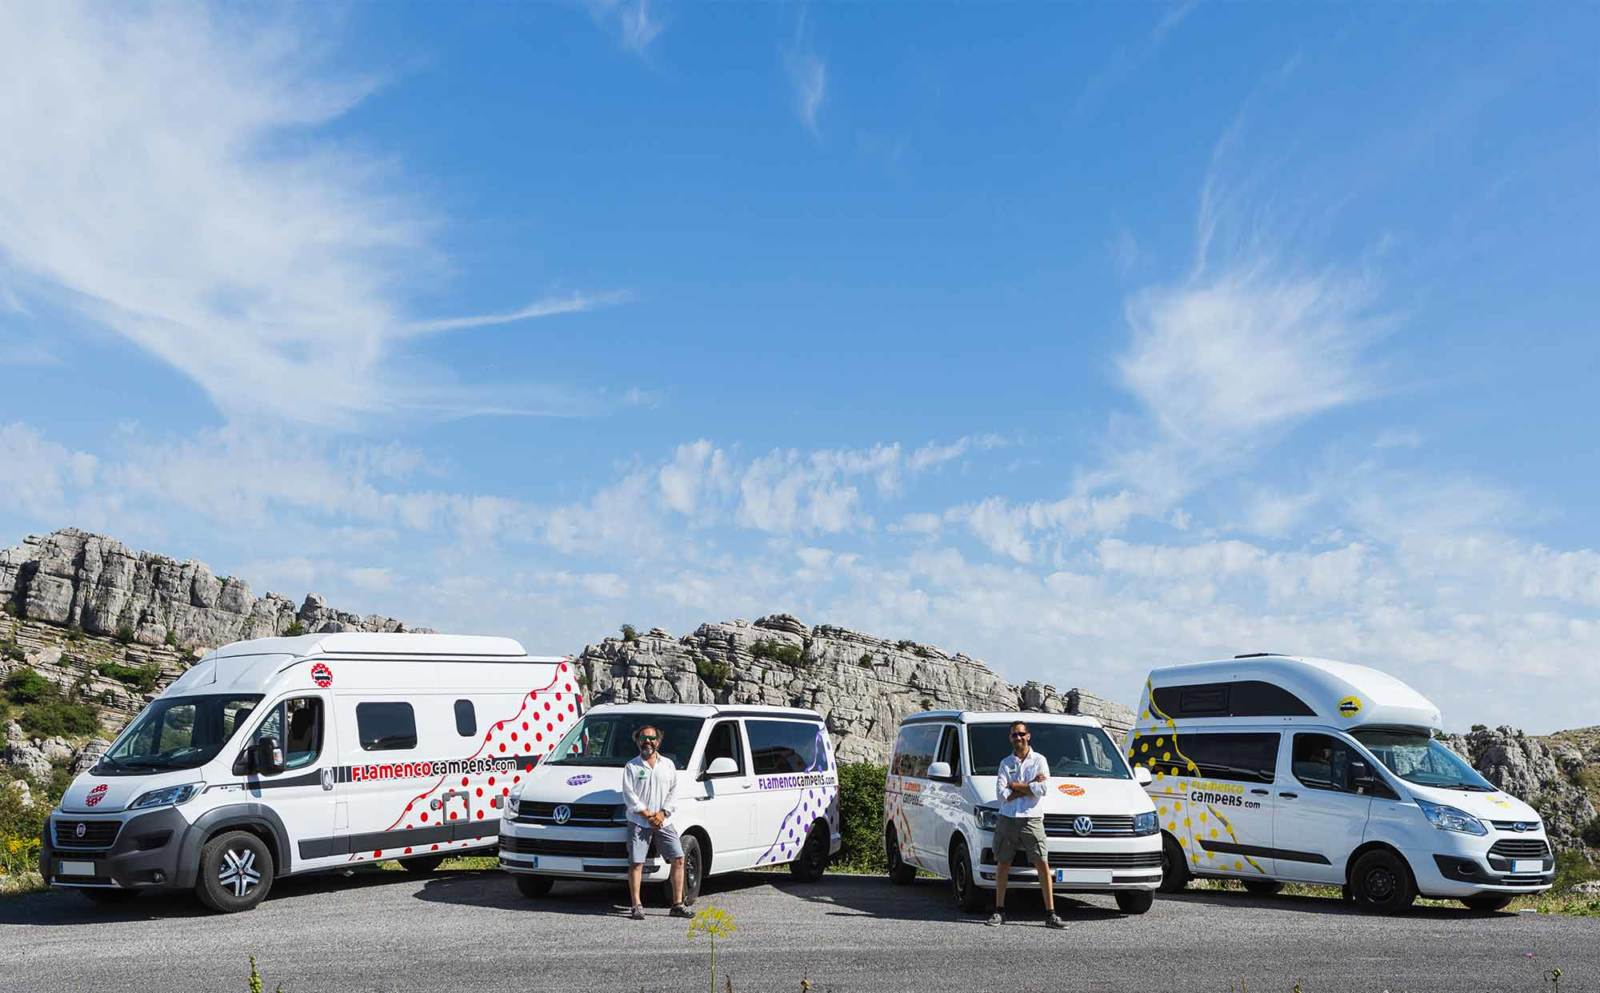 fondoinicio campers - Offers to hire a campervan in Spain. February 2020